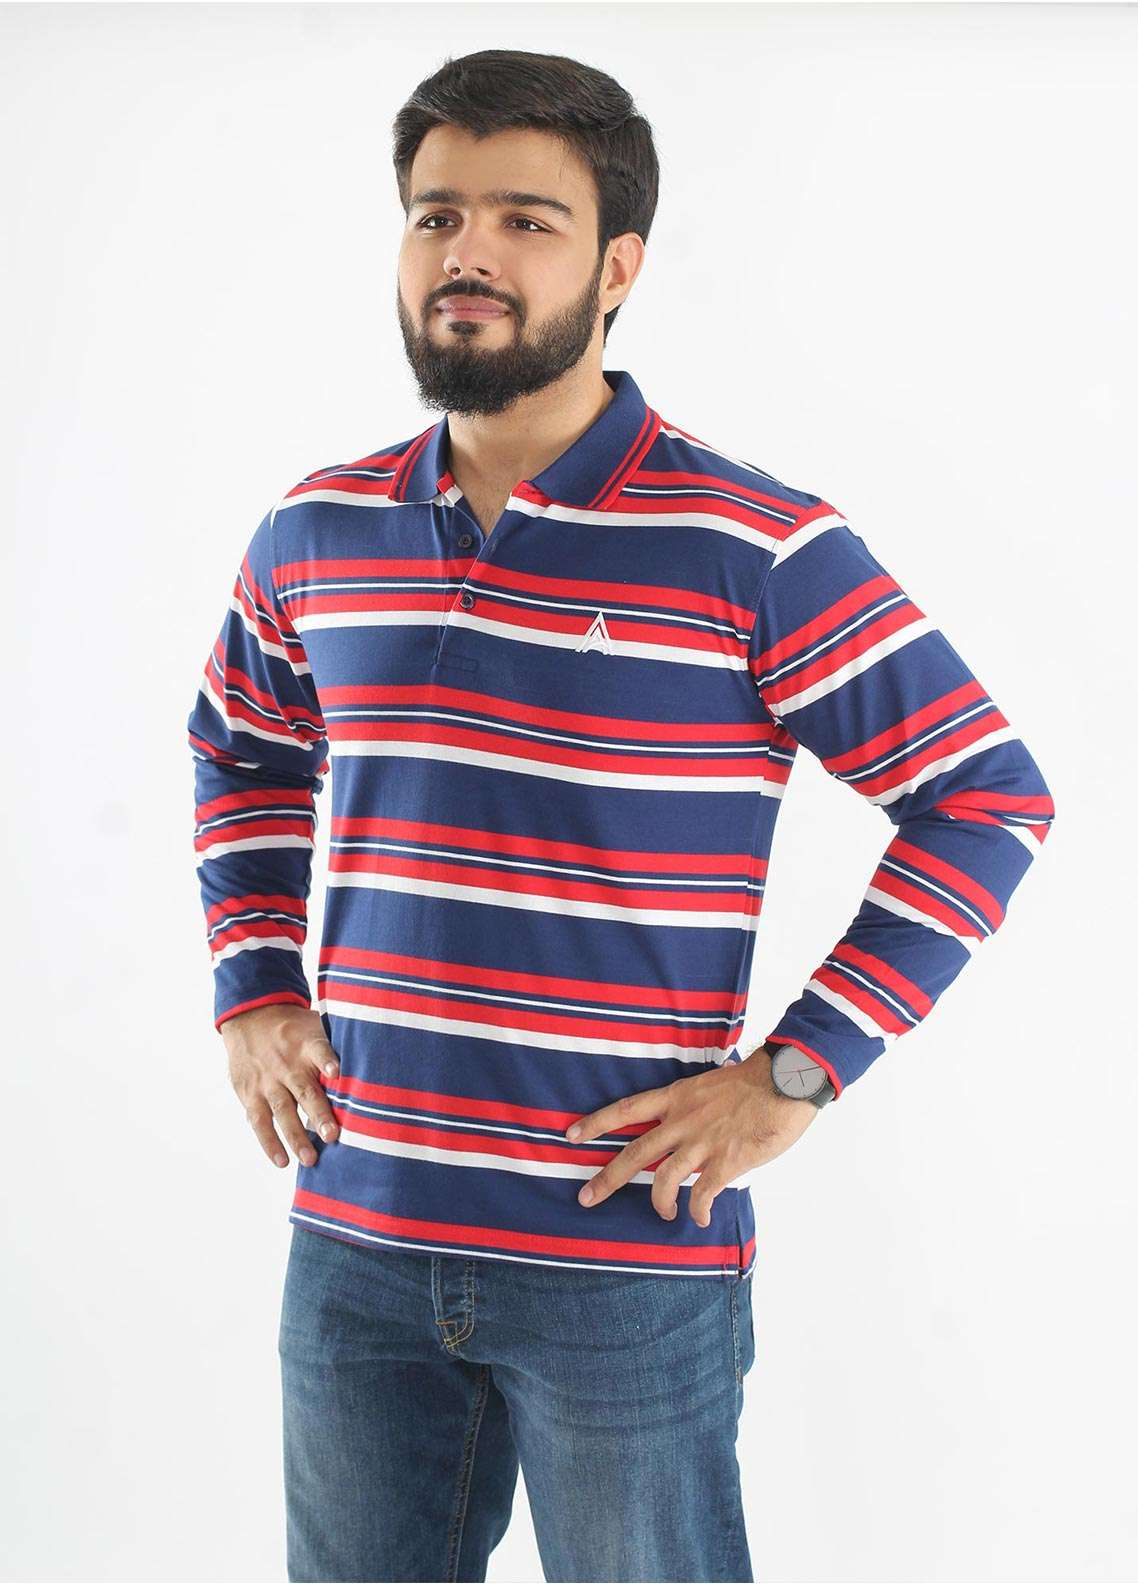 Anchor Jersey Polo T-Shirts for Men - Multi A-220